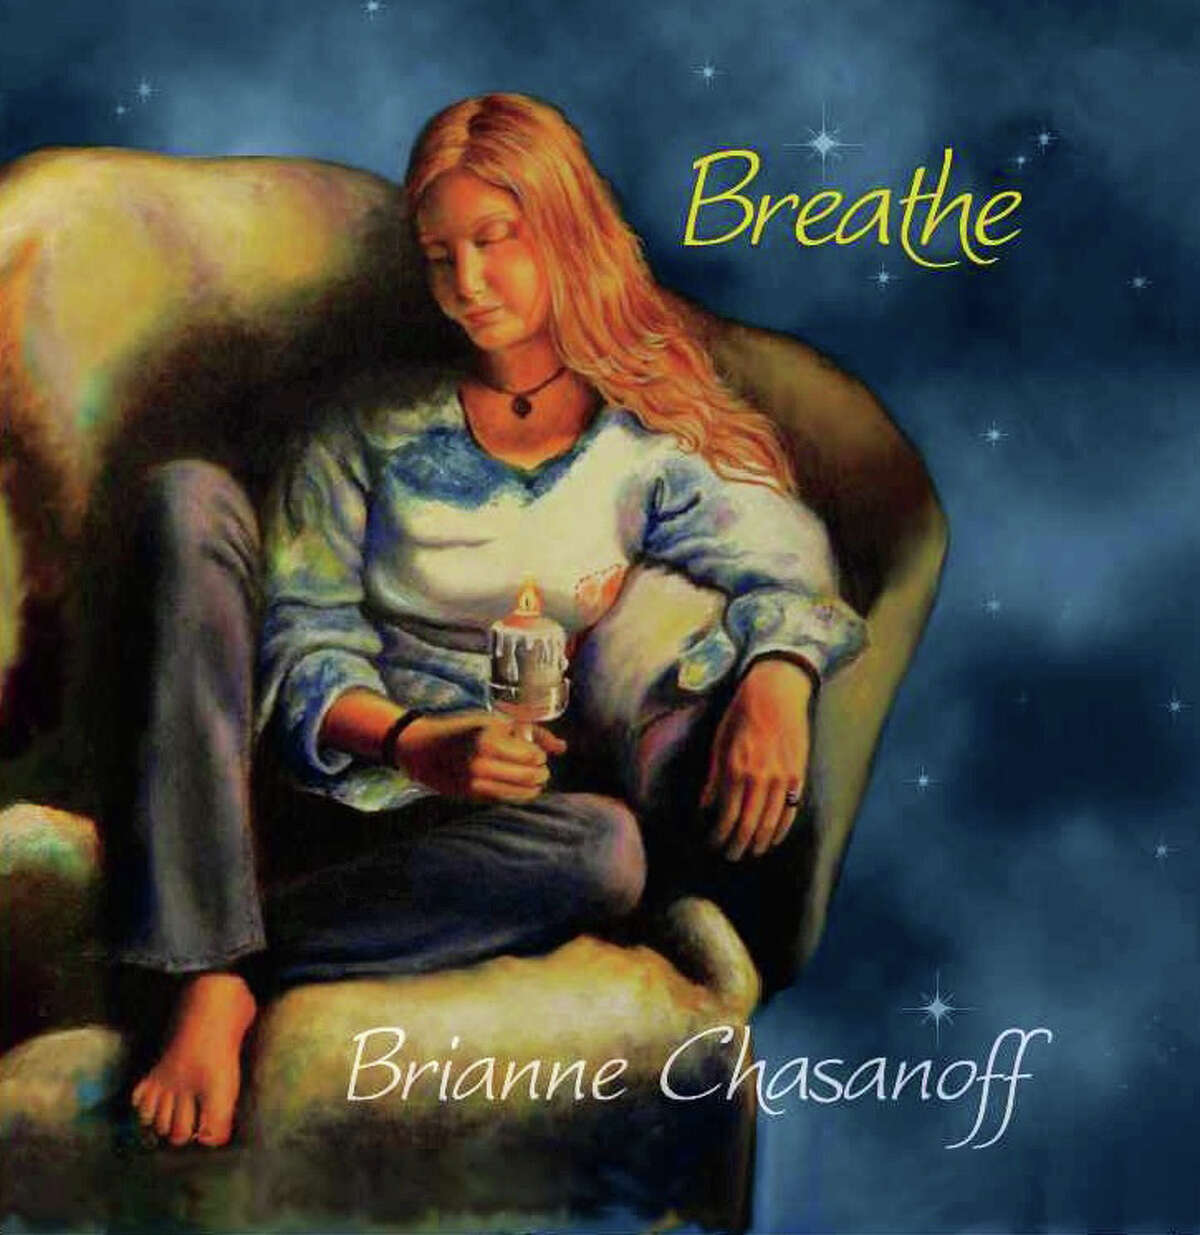 """Singer-songwriter Brianne Chasanoff, a graduate of Western Connecticut State University, will release her new album, """"Breathe,"""" on Friday, Oct. 25, at a party in the ballroom of the Westside Campus Center on the universityís westside campus."""